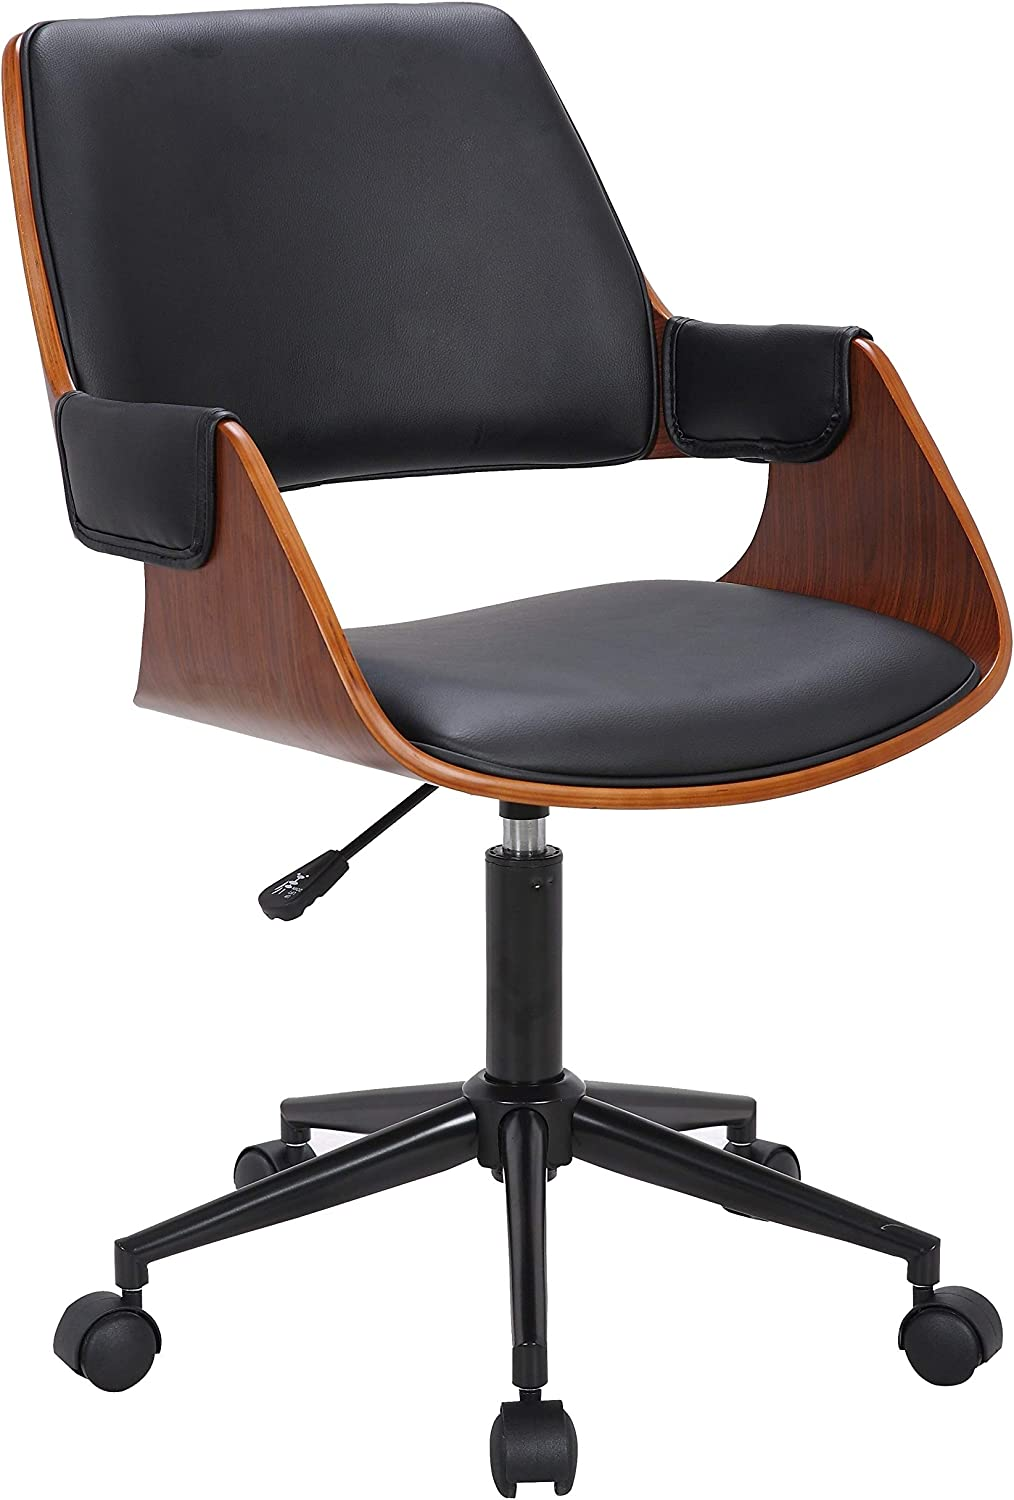 Porthos Home Office Chair, Deluxe Bentwood Style Comfy, Office Chairs Black